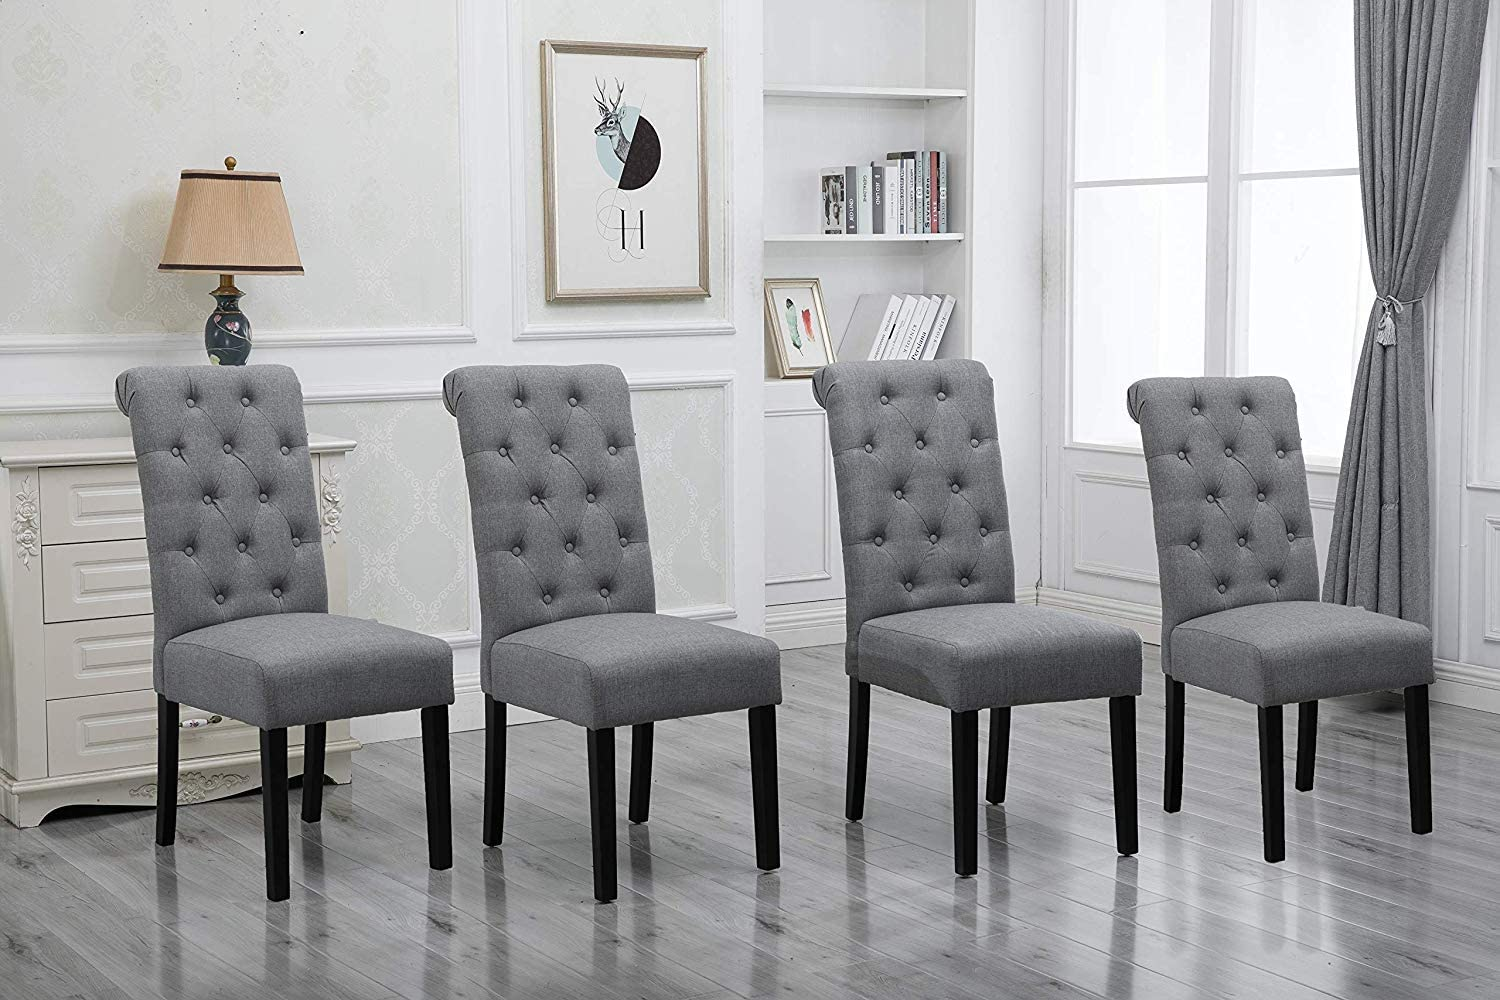 HomeSailing Comfortable Kitchen Dining Room Chairs Only Set of 6 Grey  Fabric Upholstered High Back Armless Chairs Side Chairs for Bedroom Living  Room